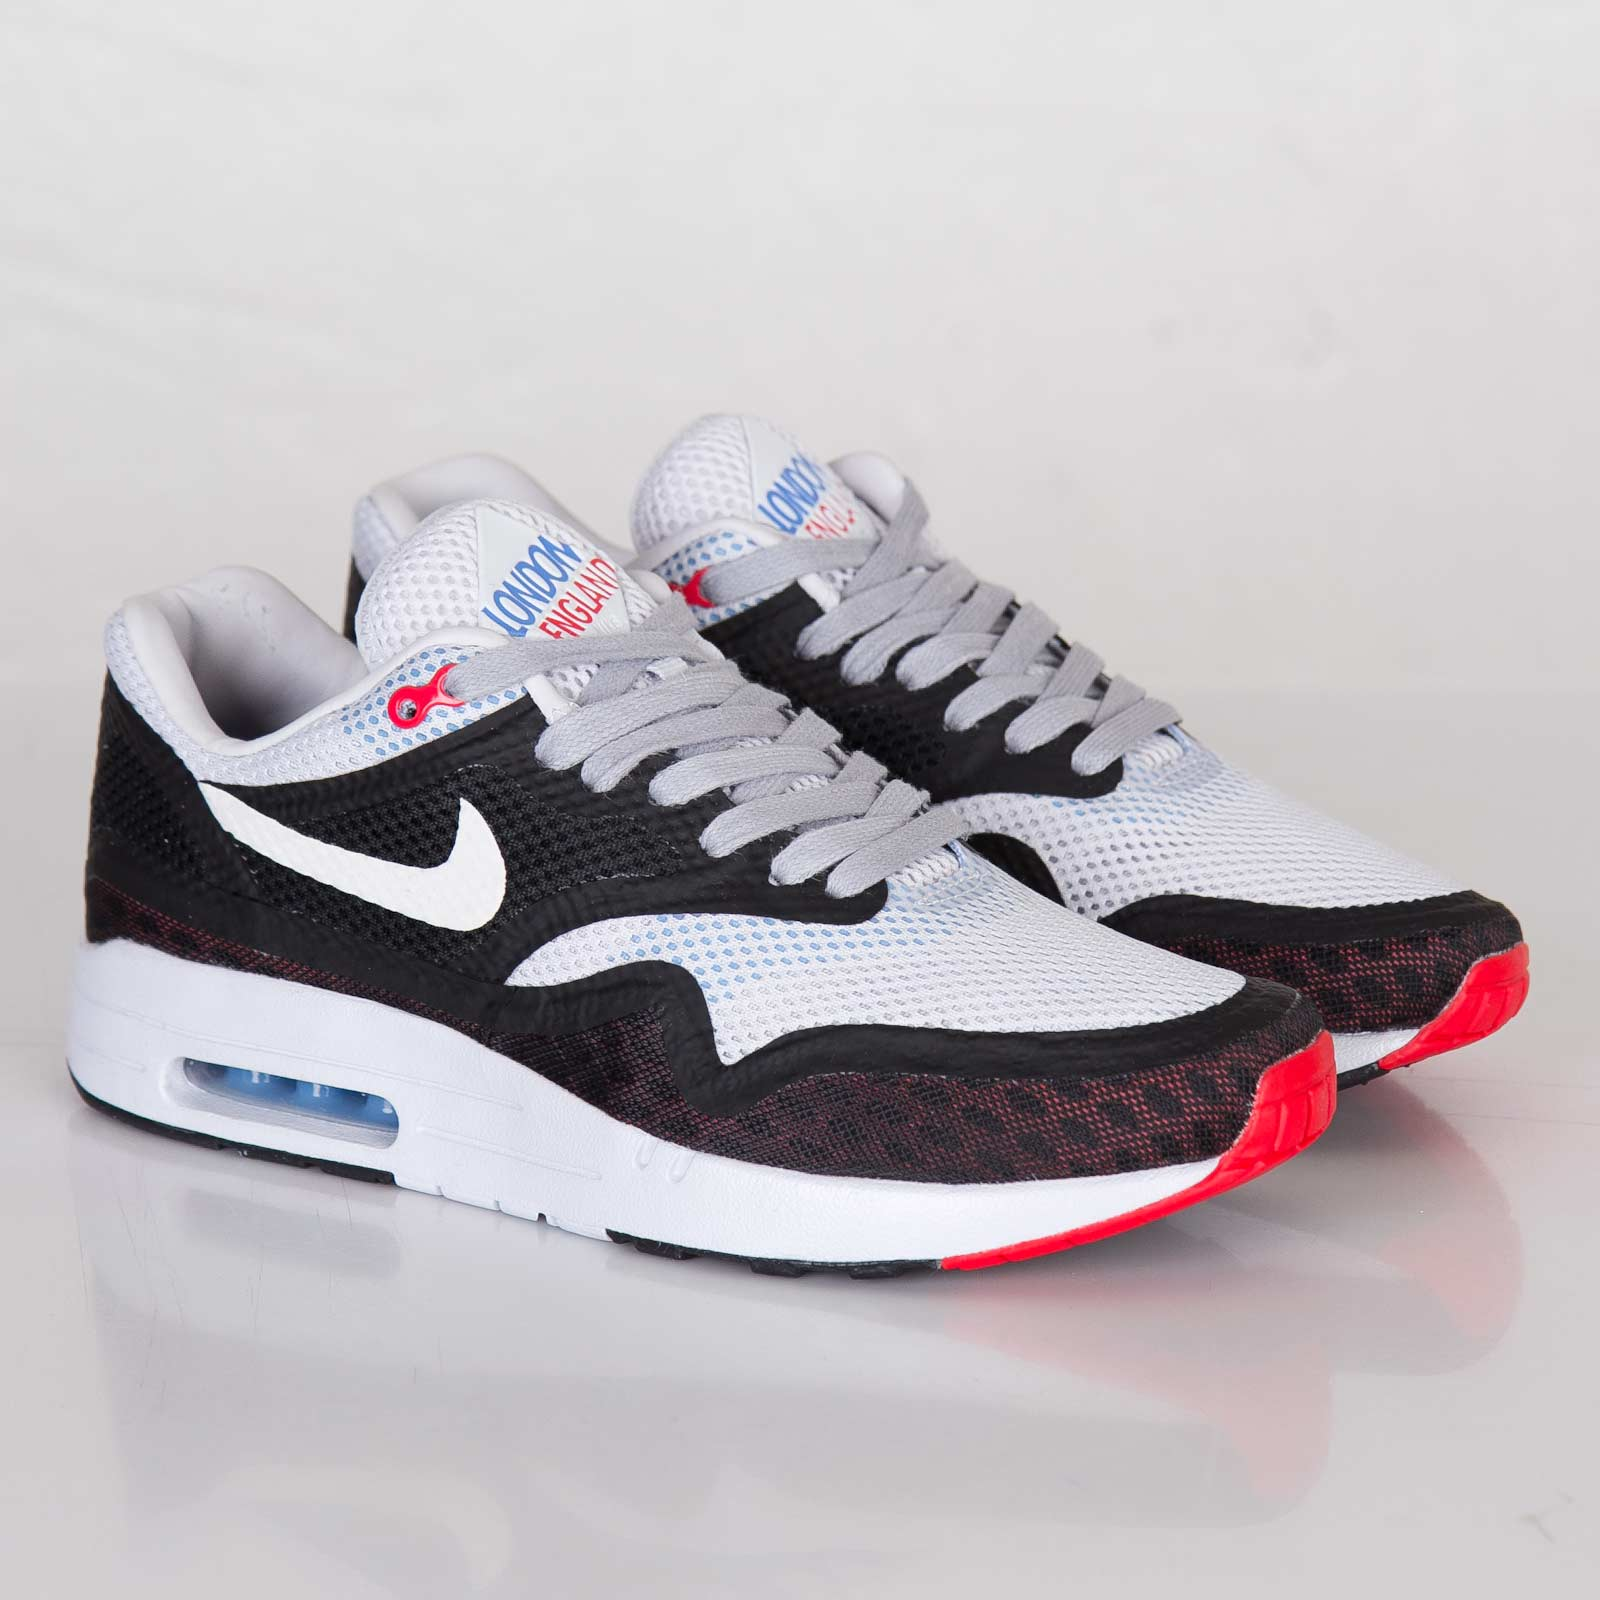 Air Max 1 City Qs 'London'